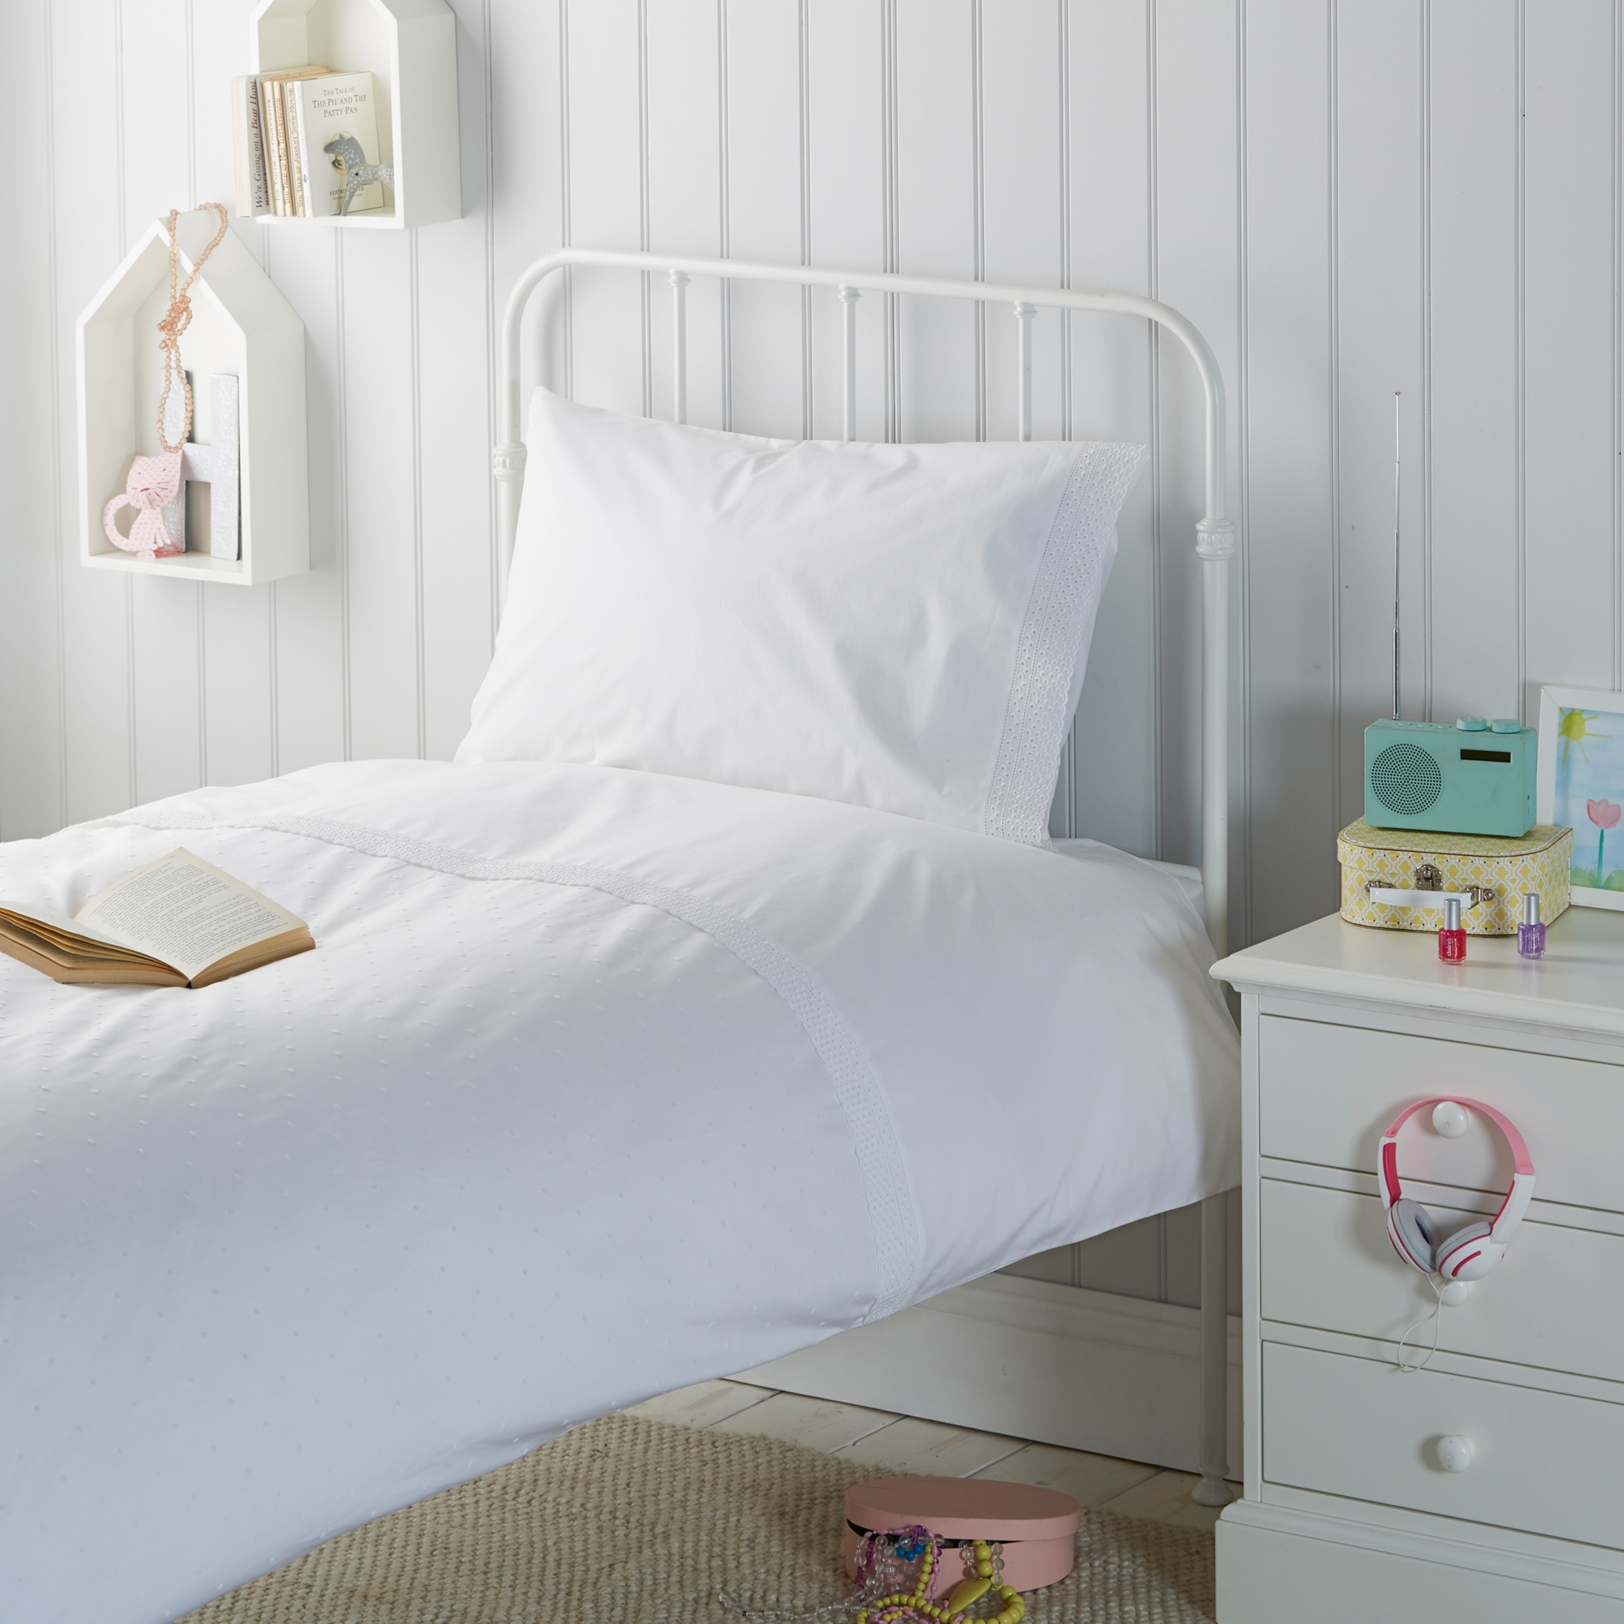 Childrens Bedroom The Little White Company The White Company UK